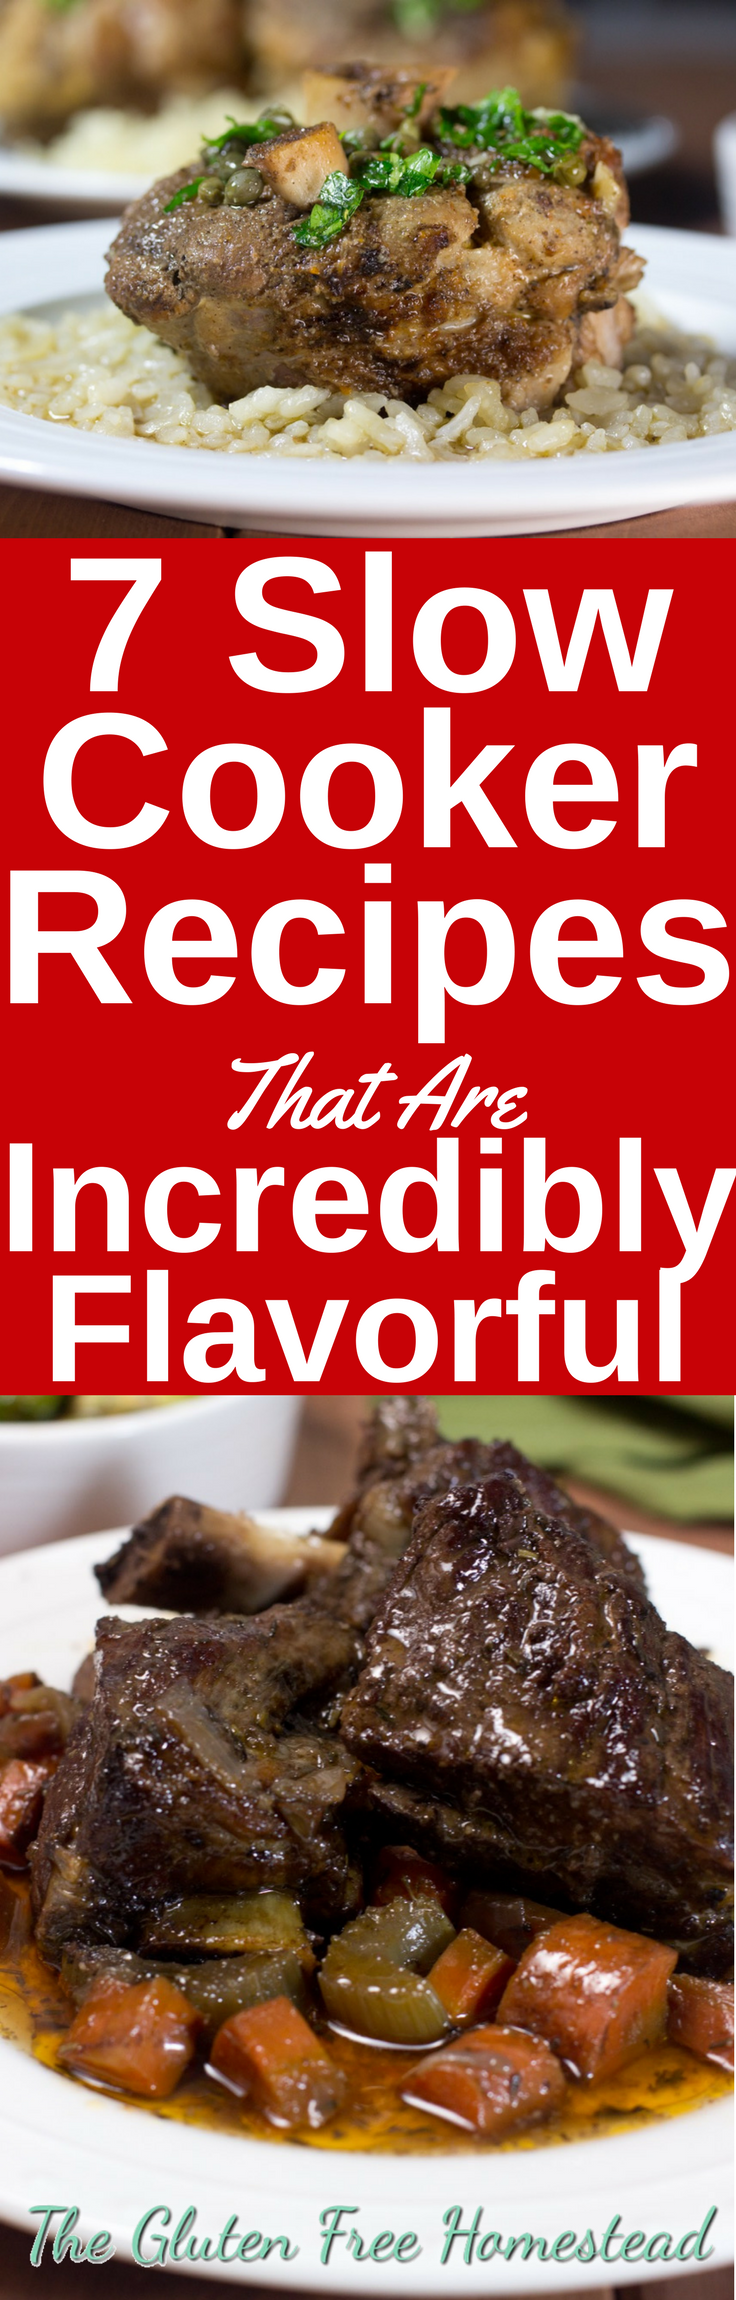 Learn the secret to tender, juicy meat that's incredibly tasty! | healthy recipes | Many low-carb meals or low-carb options | beef | pork | lamb stew | short ribs | easy slow cooker dinners | crockpot | gluten-free recipes | paleo recipes